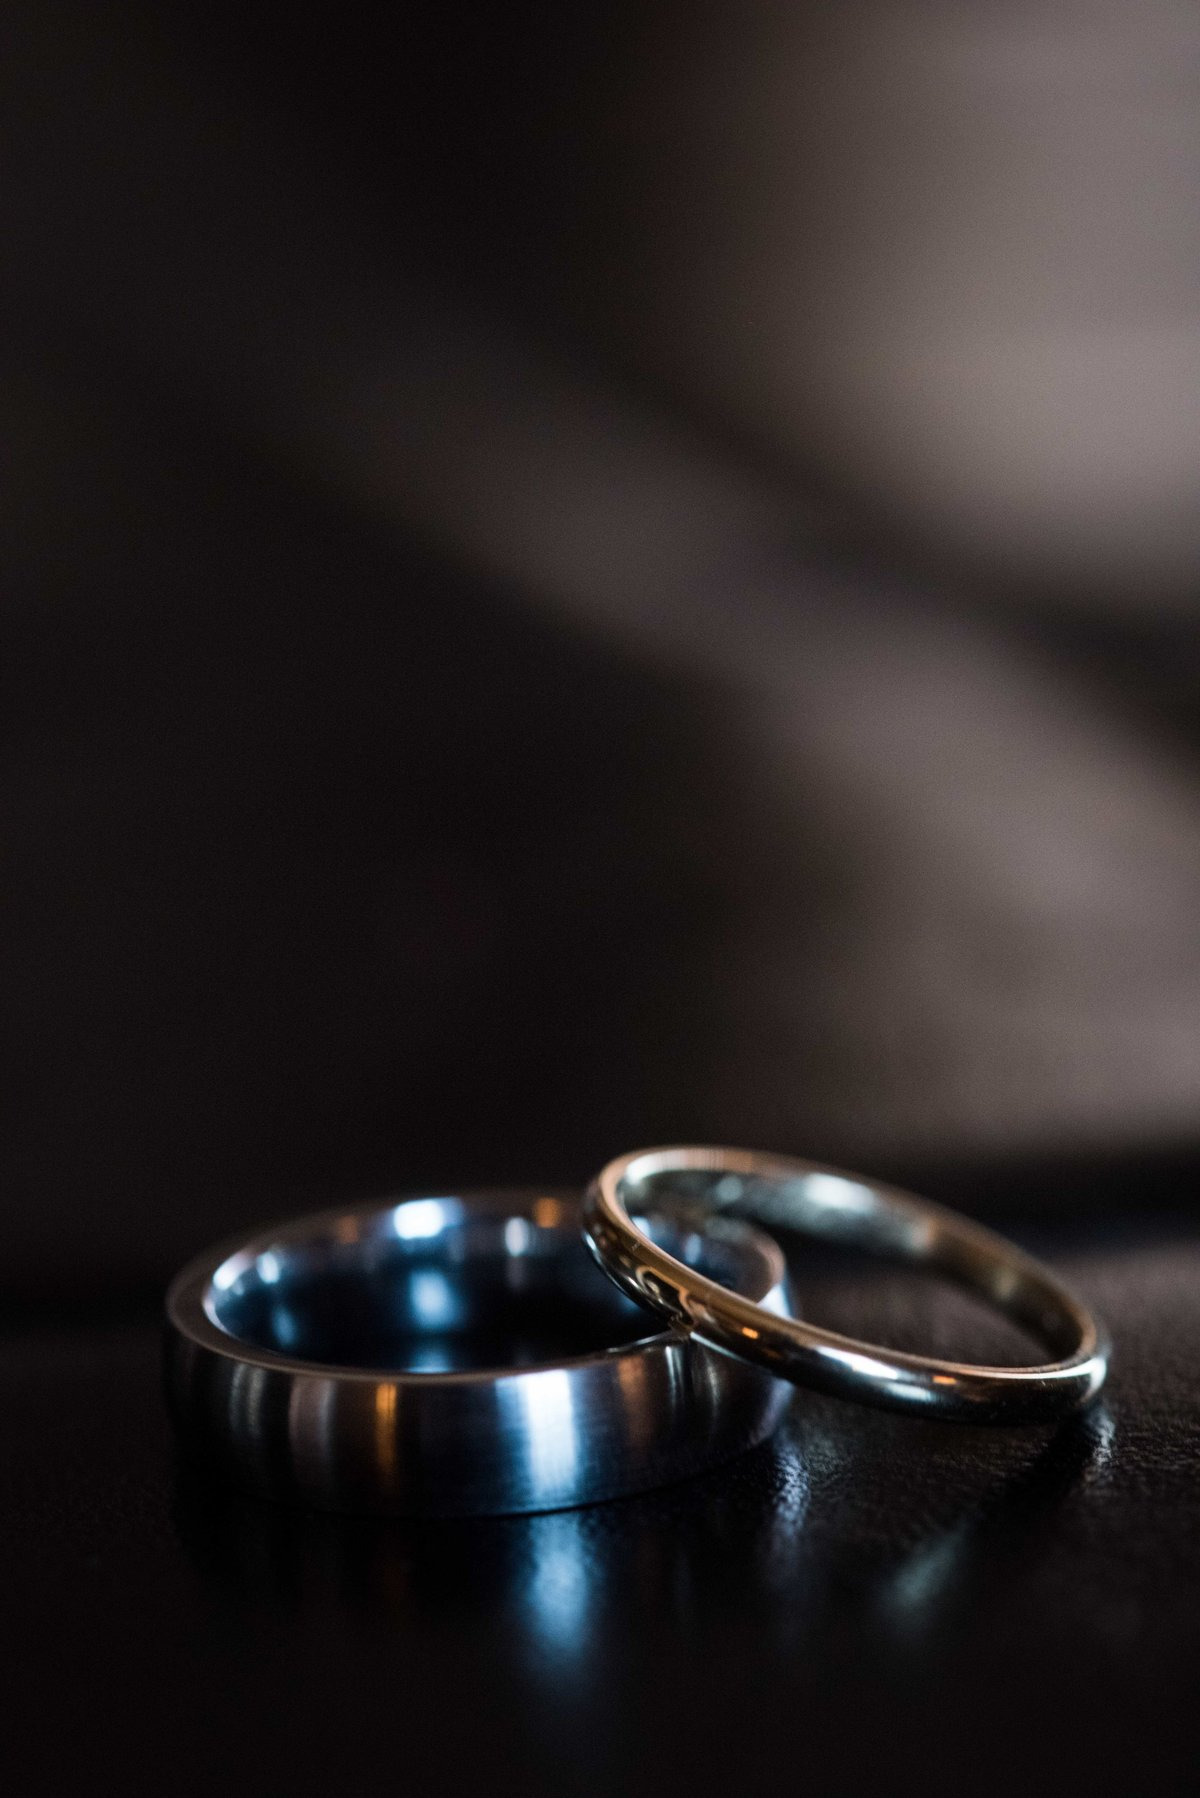 Wedding band closeup, Chicago, dark background.